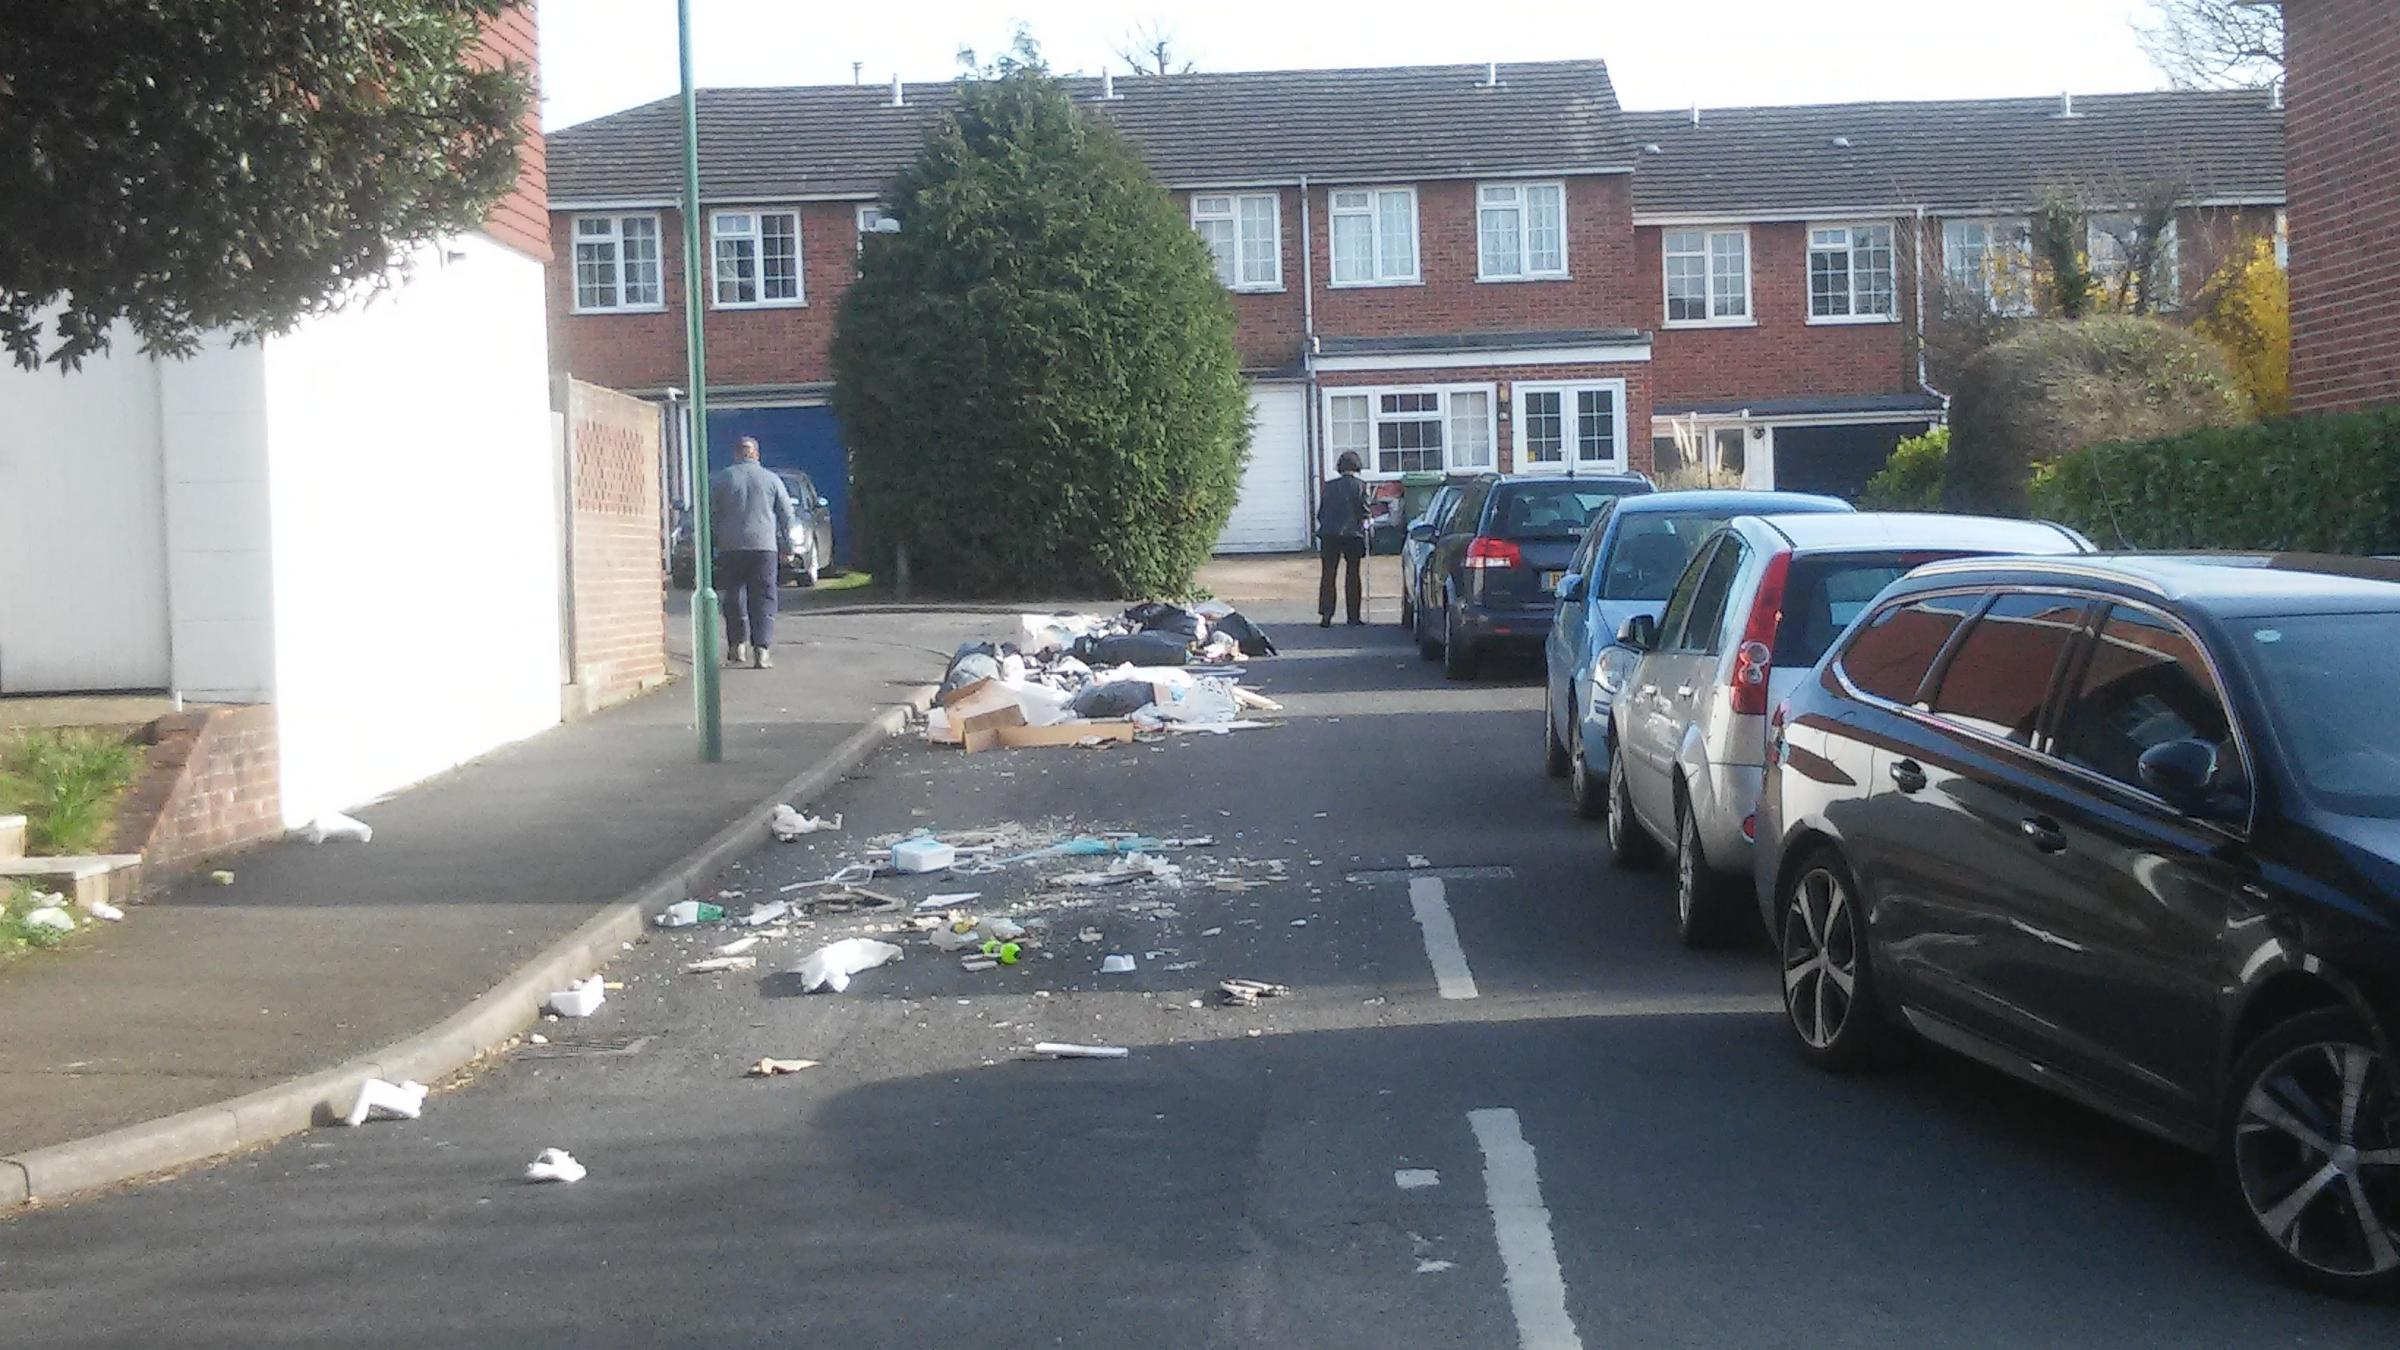 Waste was reportedly dumped in the street by two masked men. Photo: Beresford Campbell